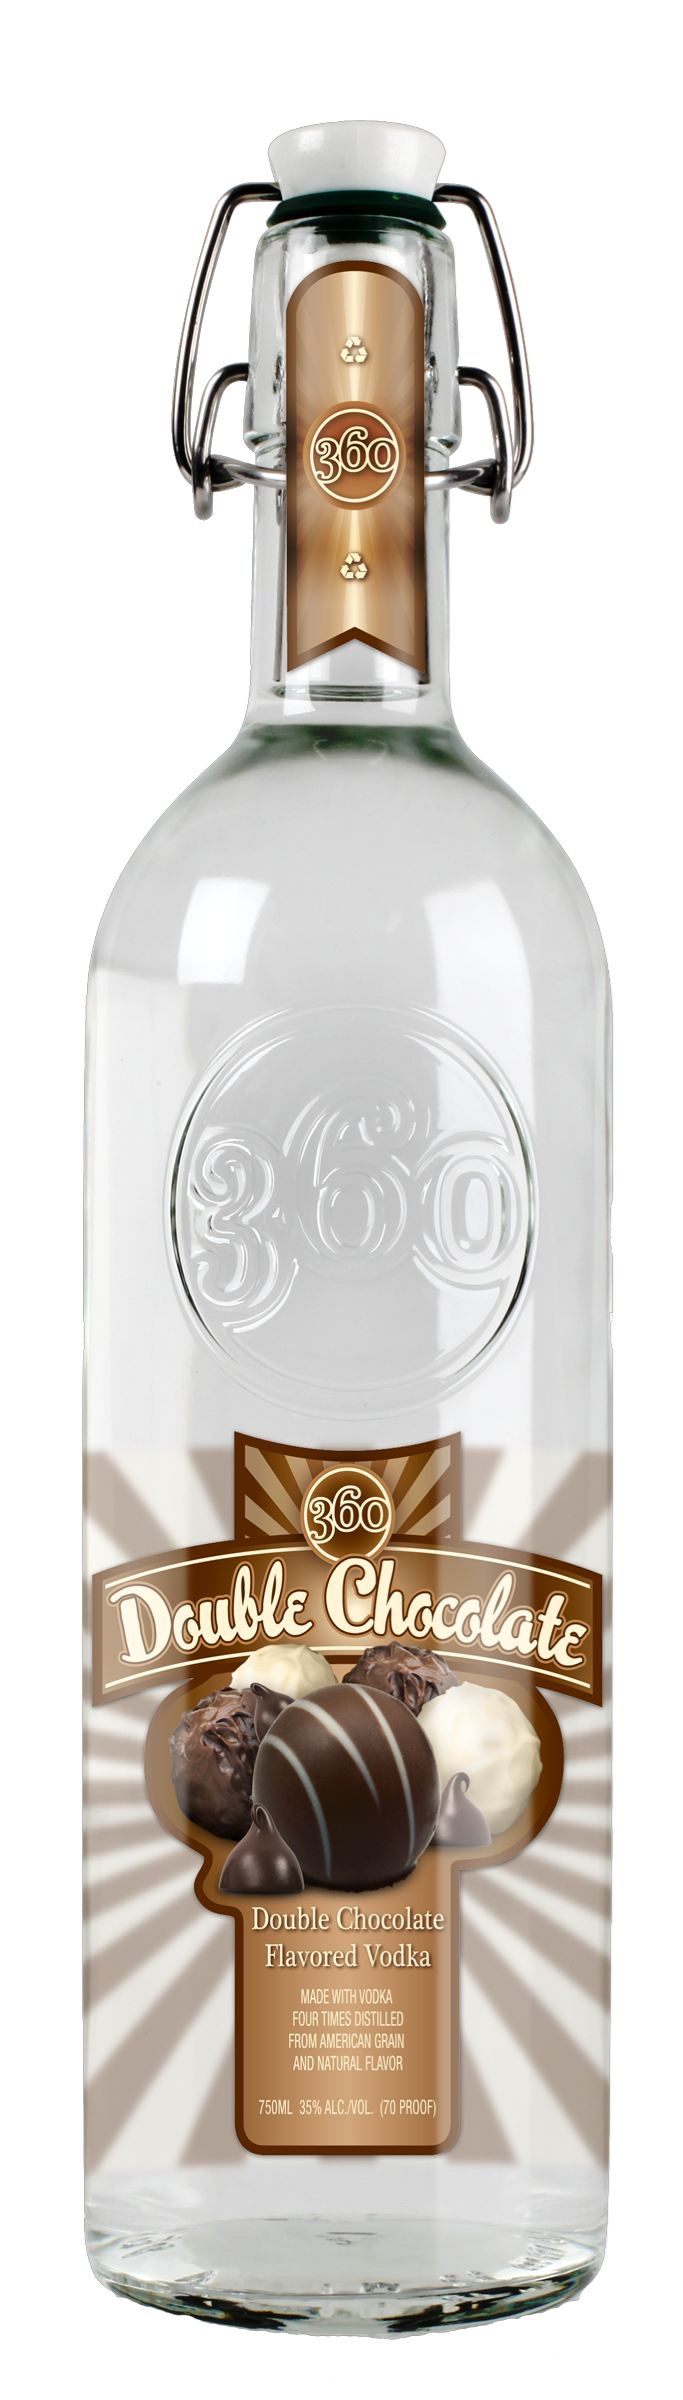 Chocolate Vodka Archives - Best Tasting Spirits | Best Tasting Spirits